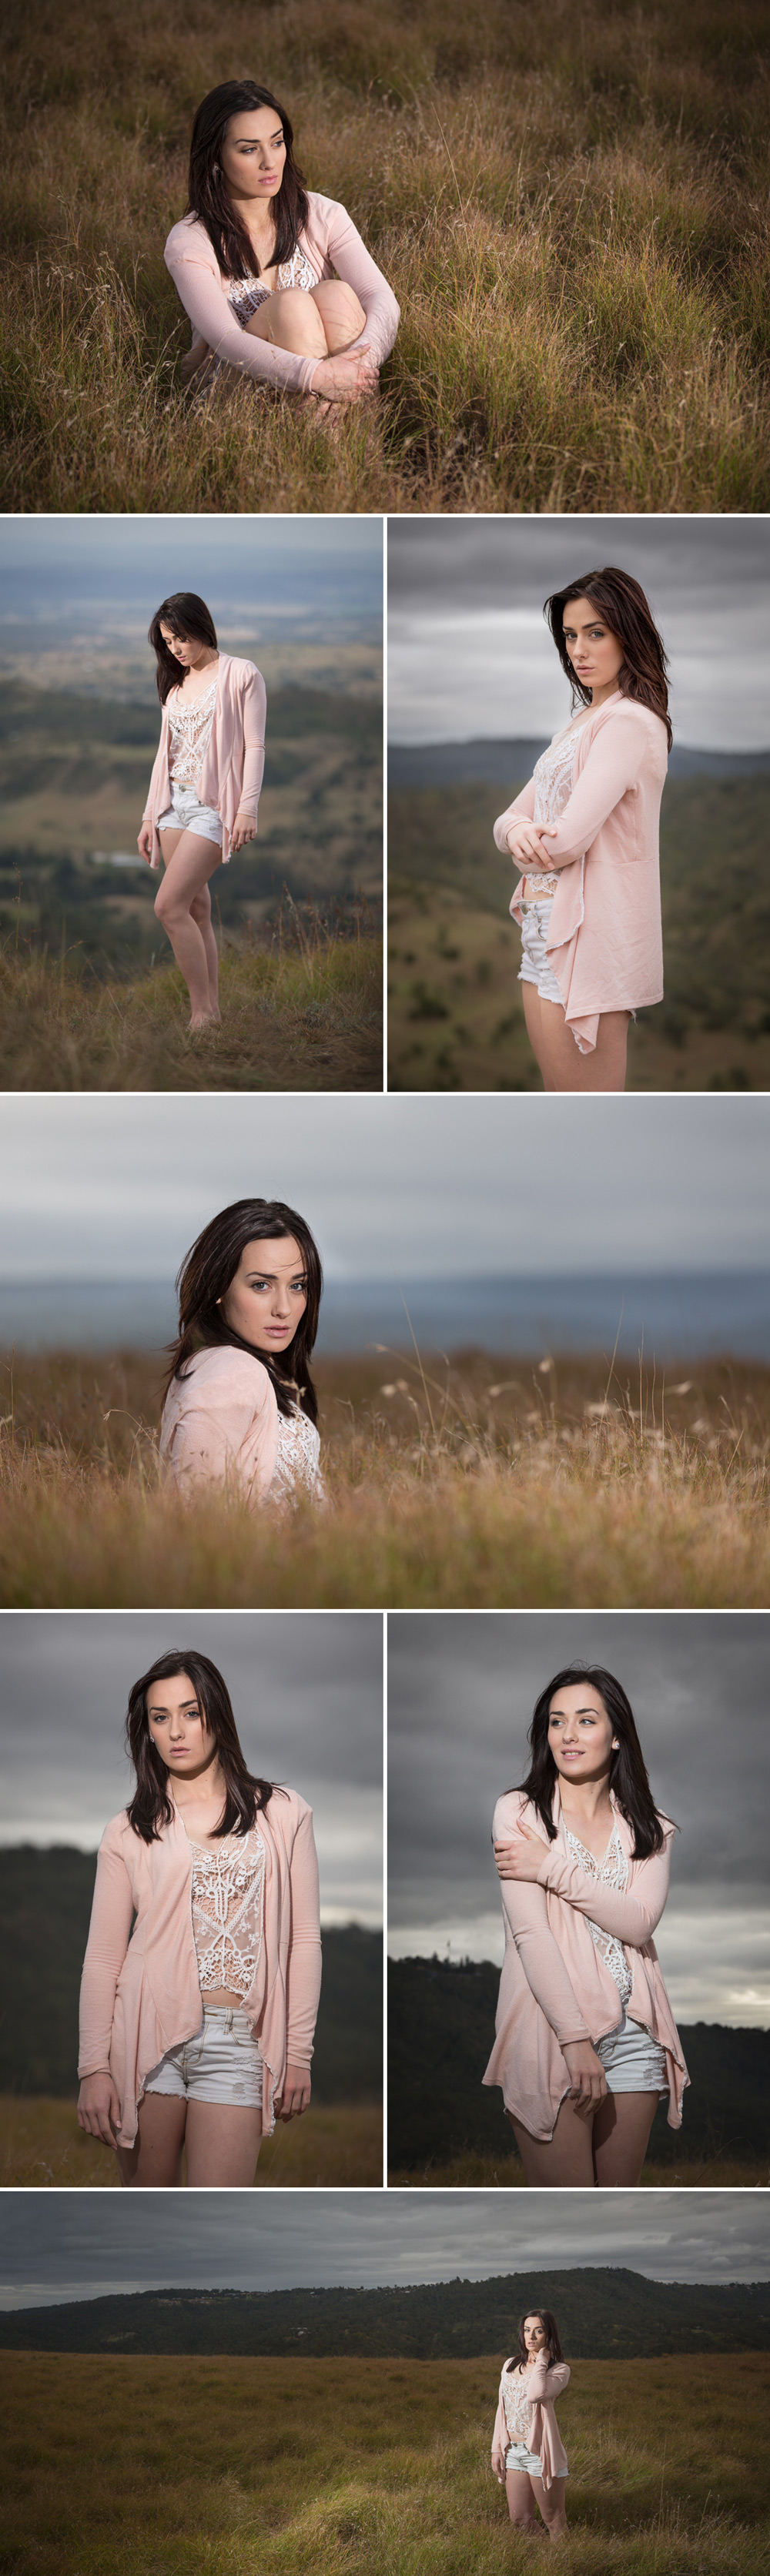 Toowoomba photographer Tabletop mountain photoshoot 2